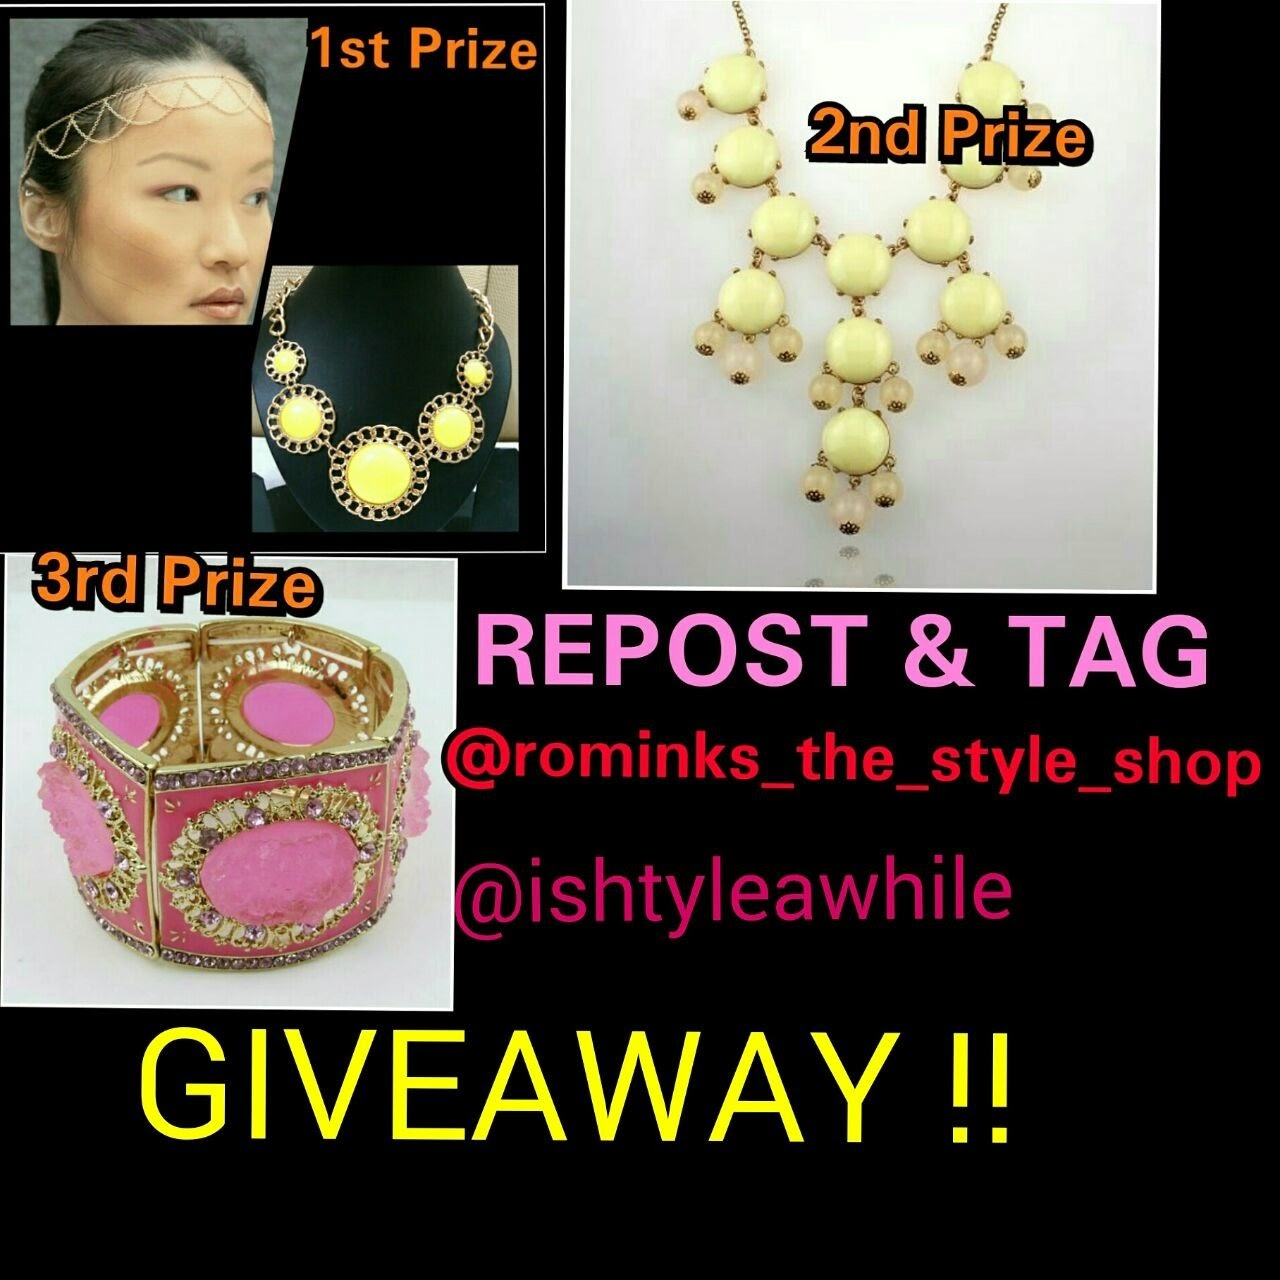 IshtyleAwhile on Instagram with a Diwali special Giveaway! image